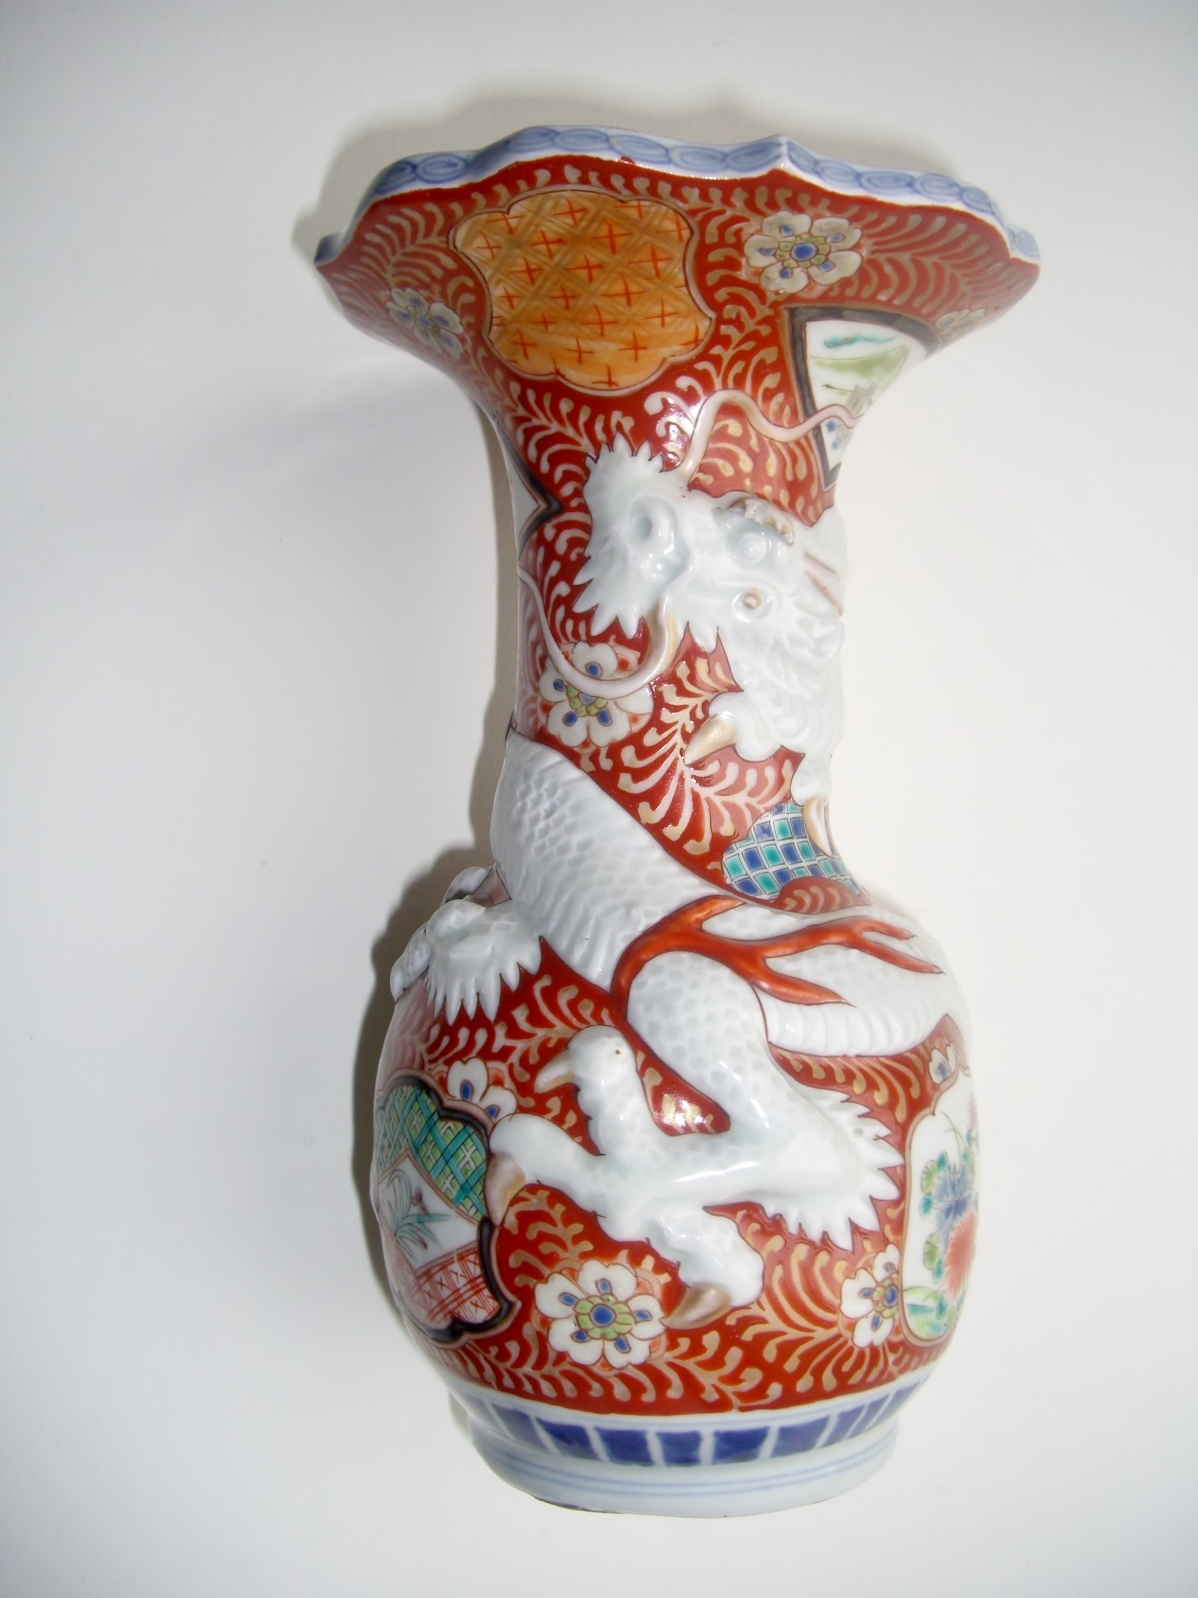 Japanese imari arita dragon vase antique for sale antiques this japanese imari or arita ware dragon vase is about 9 12 high i have not been able to identify the marks on the bottom in this clever design a dragon reviewsmspy